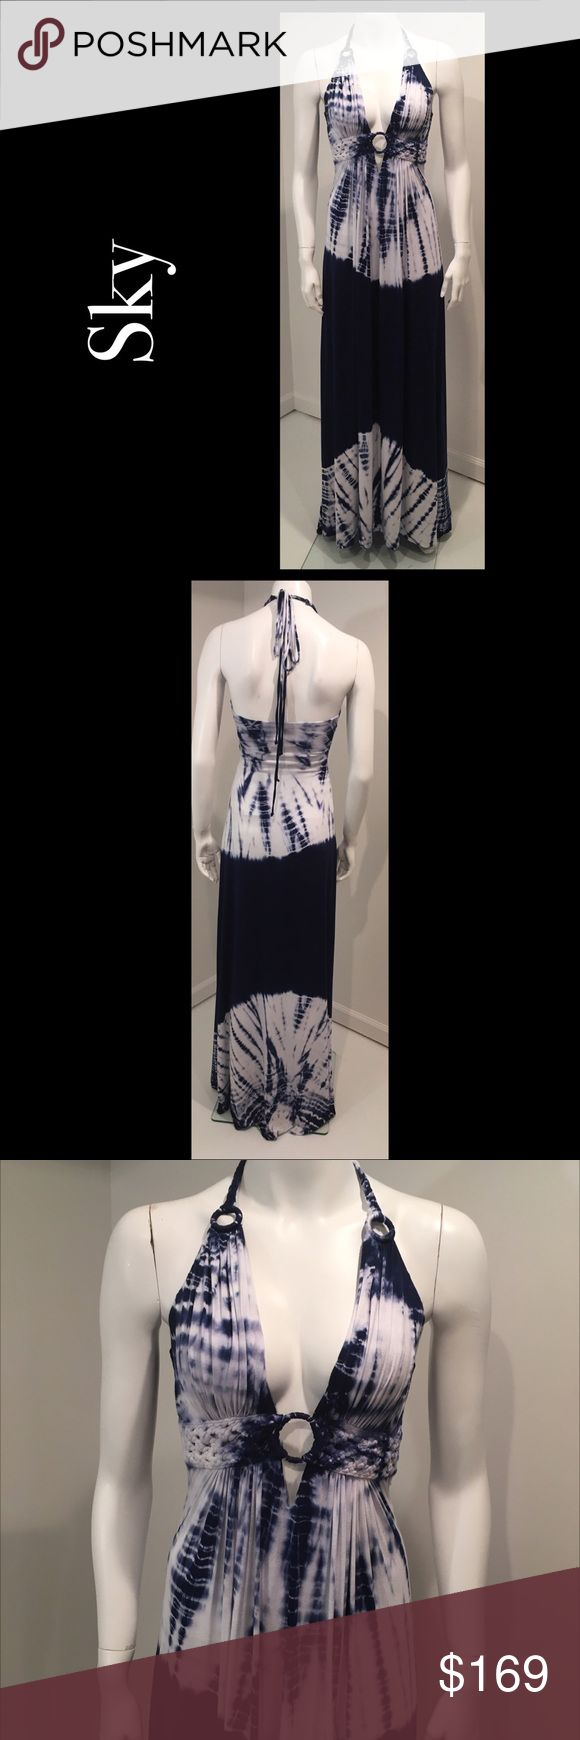 🌸 Sky Maxi Small Halter Dress Navy Blue Tie Dye NWT Sky Maxi Small Halter Dress Navy Blue Tie Dye Drape Front  New with Tags   Drape front halter   Maxi dress   Tie dye navy blue & white   🛍For the best deal, I offer a bundle discount! Please check out my closet for other fabulous items!🛍 Sky Dresses Maxi